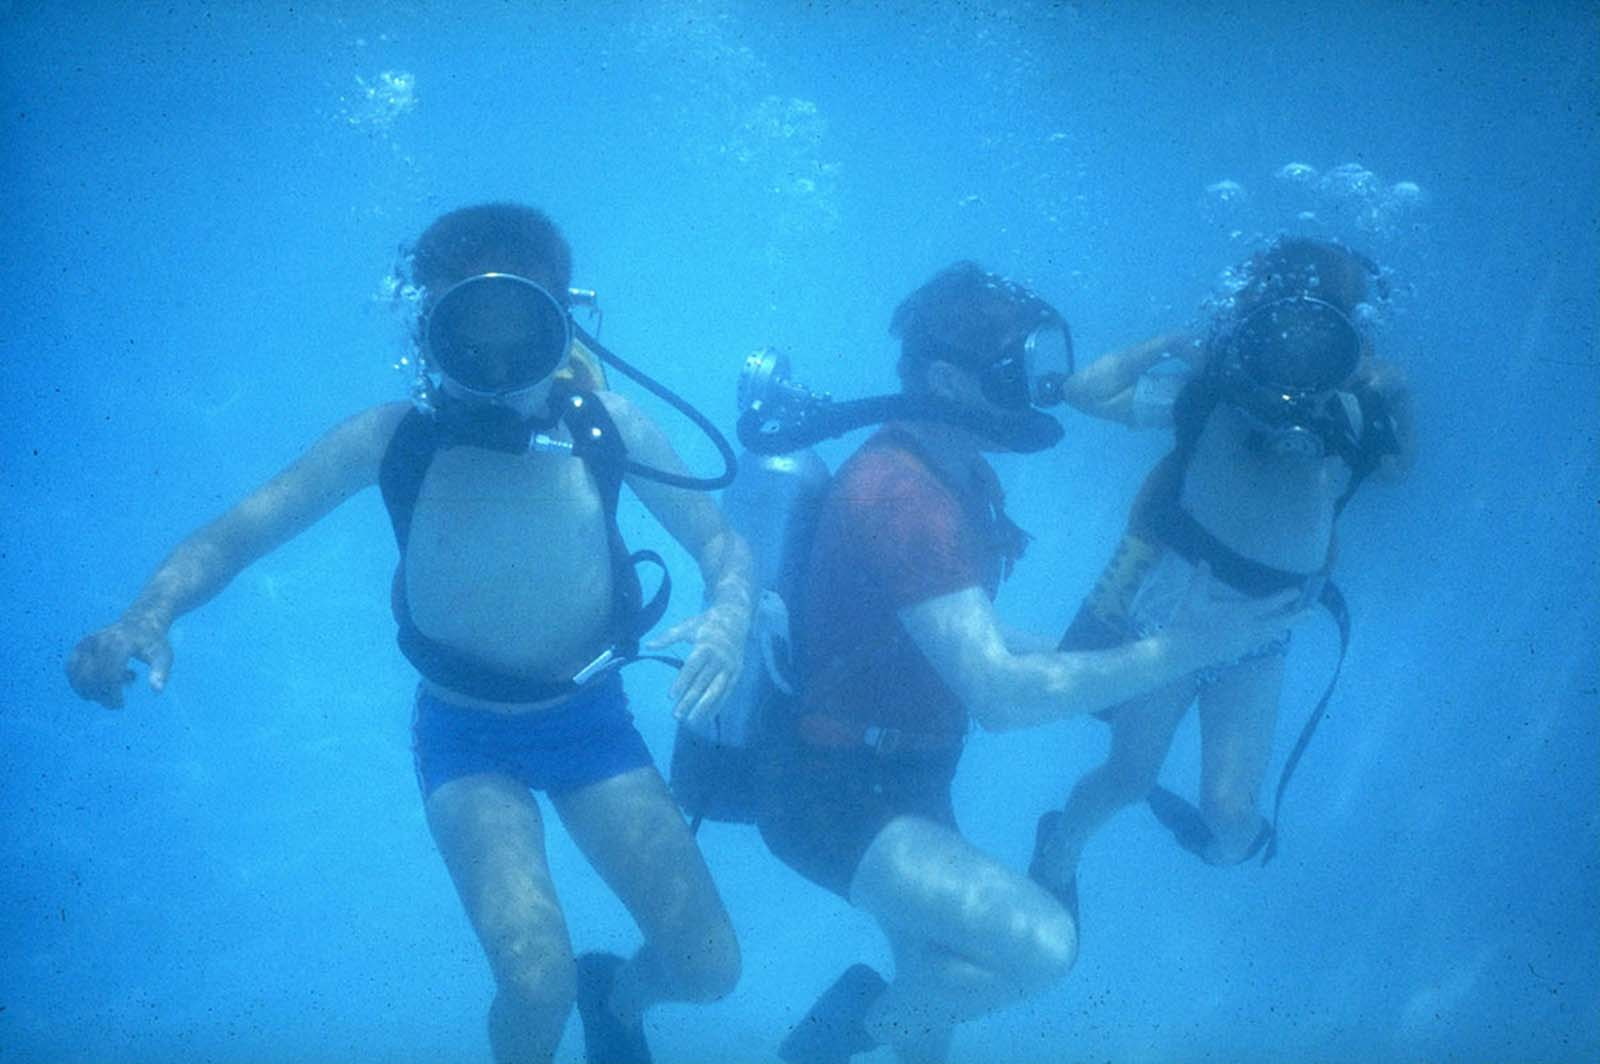 Neil Armstrong and his sons, Ricky and Mark, scuba dive in a swimming pool in Houston, Texas, in March 1969.